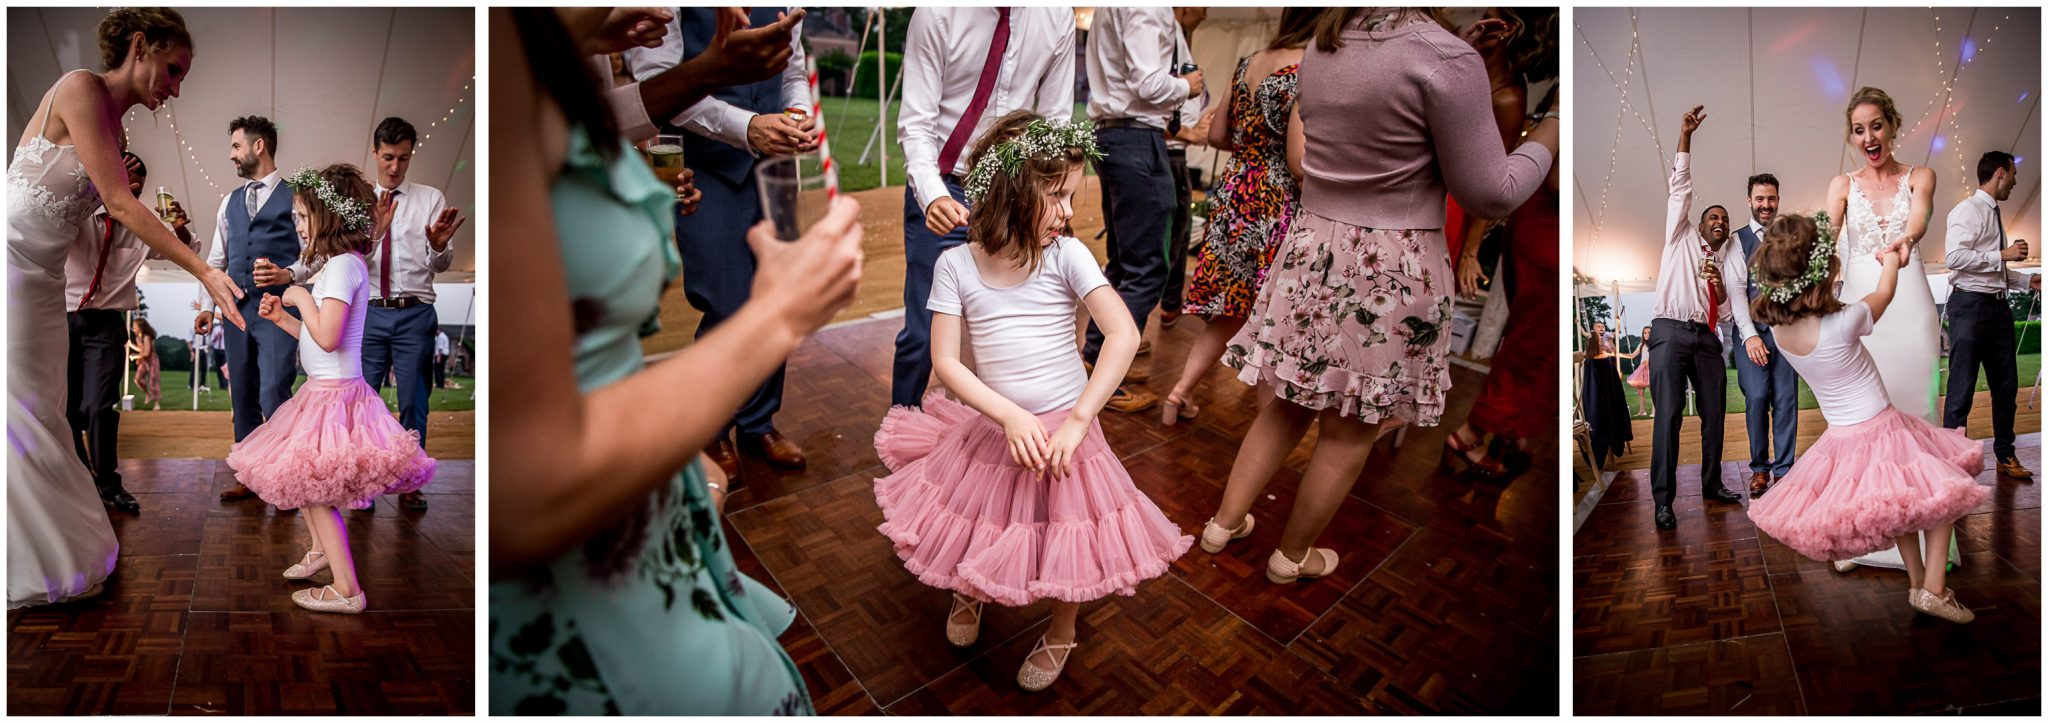 Bride dancing with flower girl at evening wedding reception